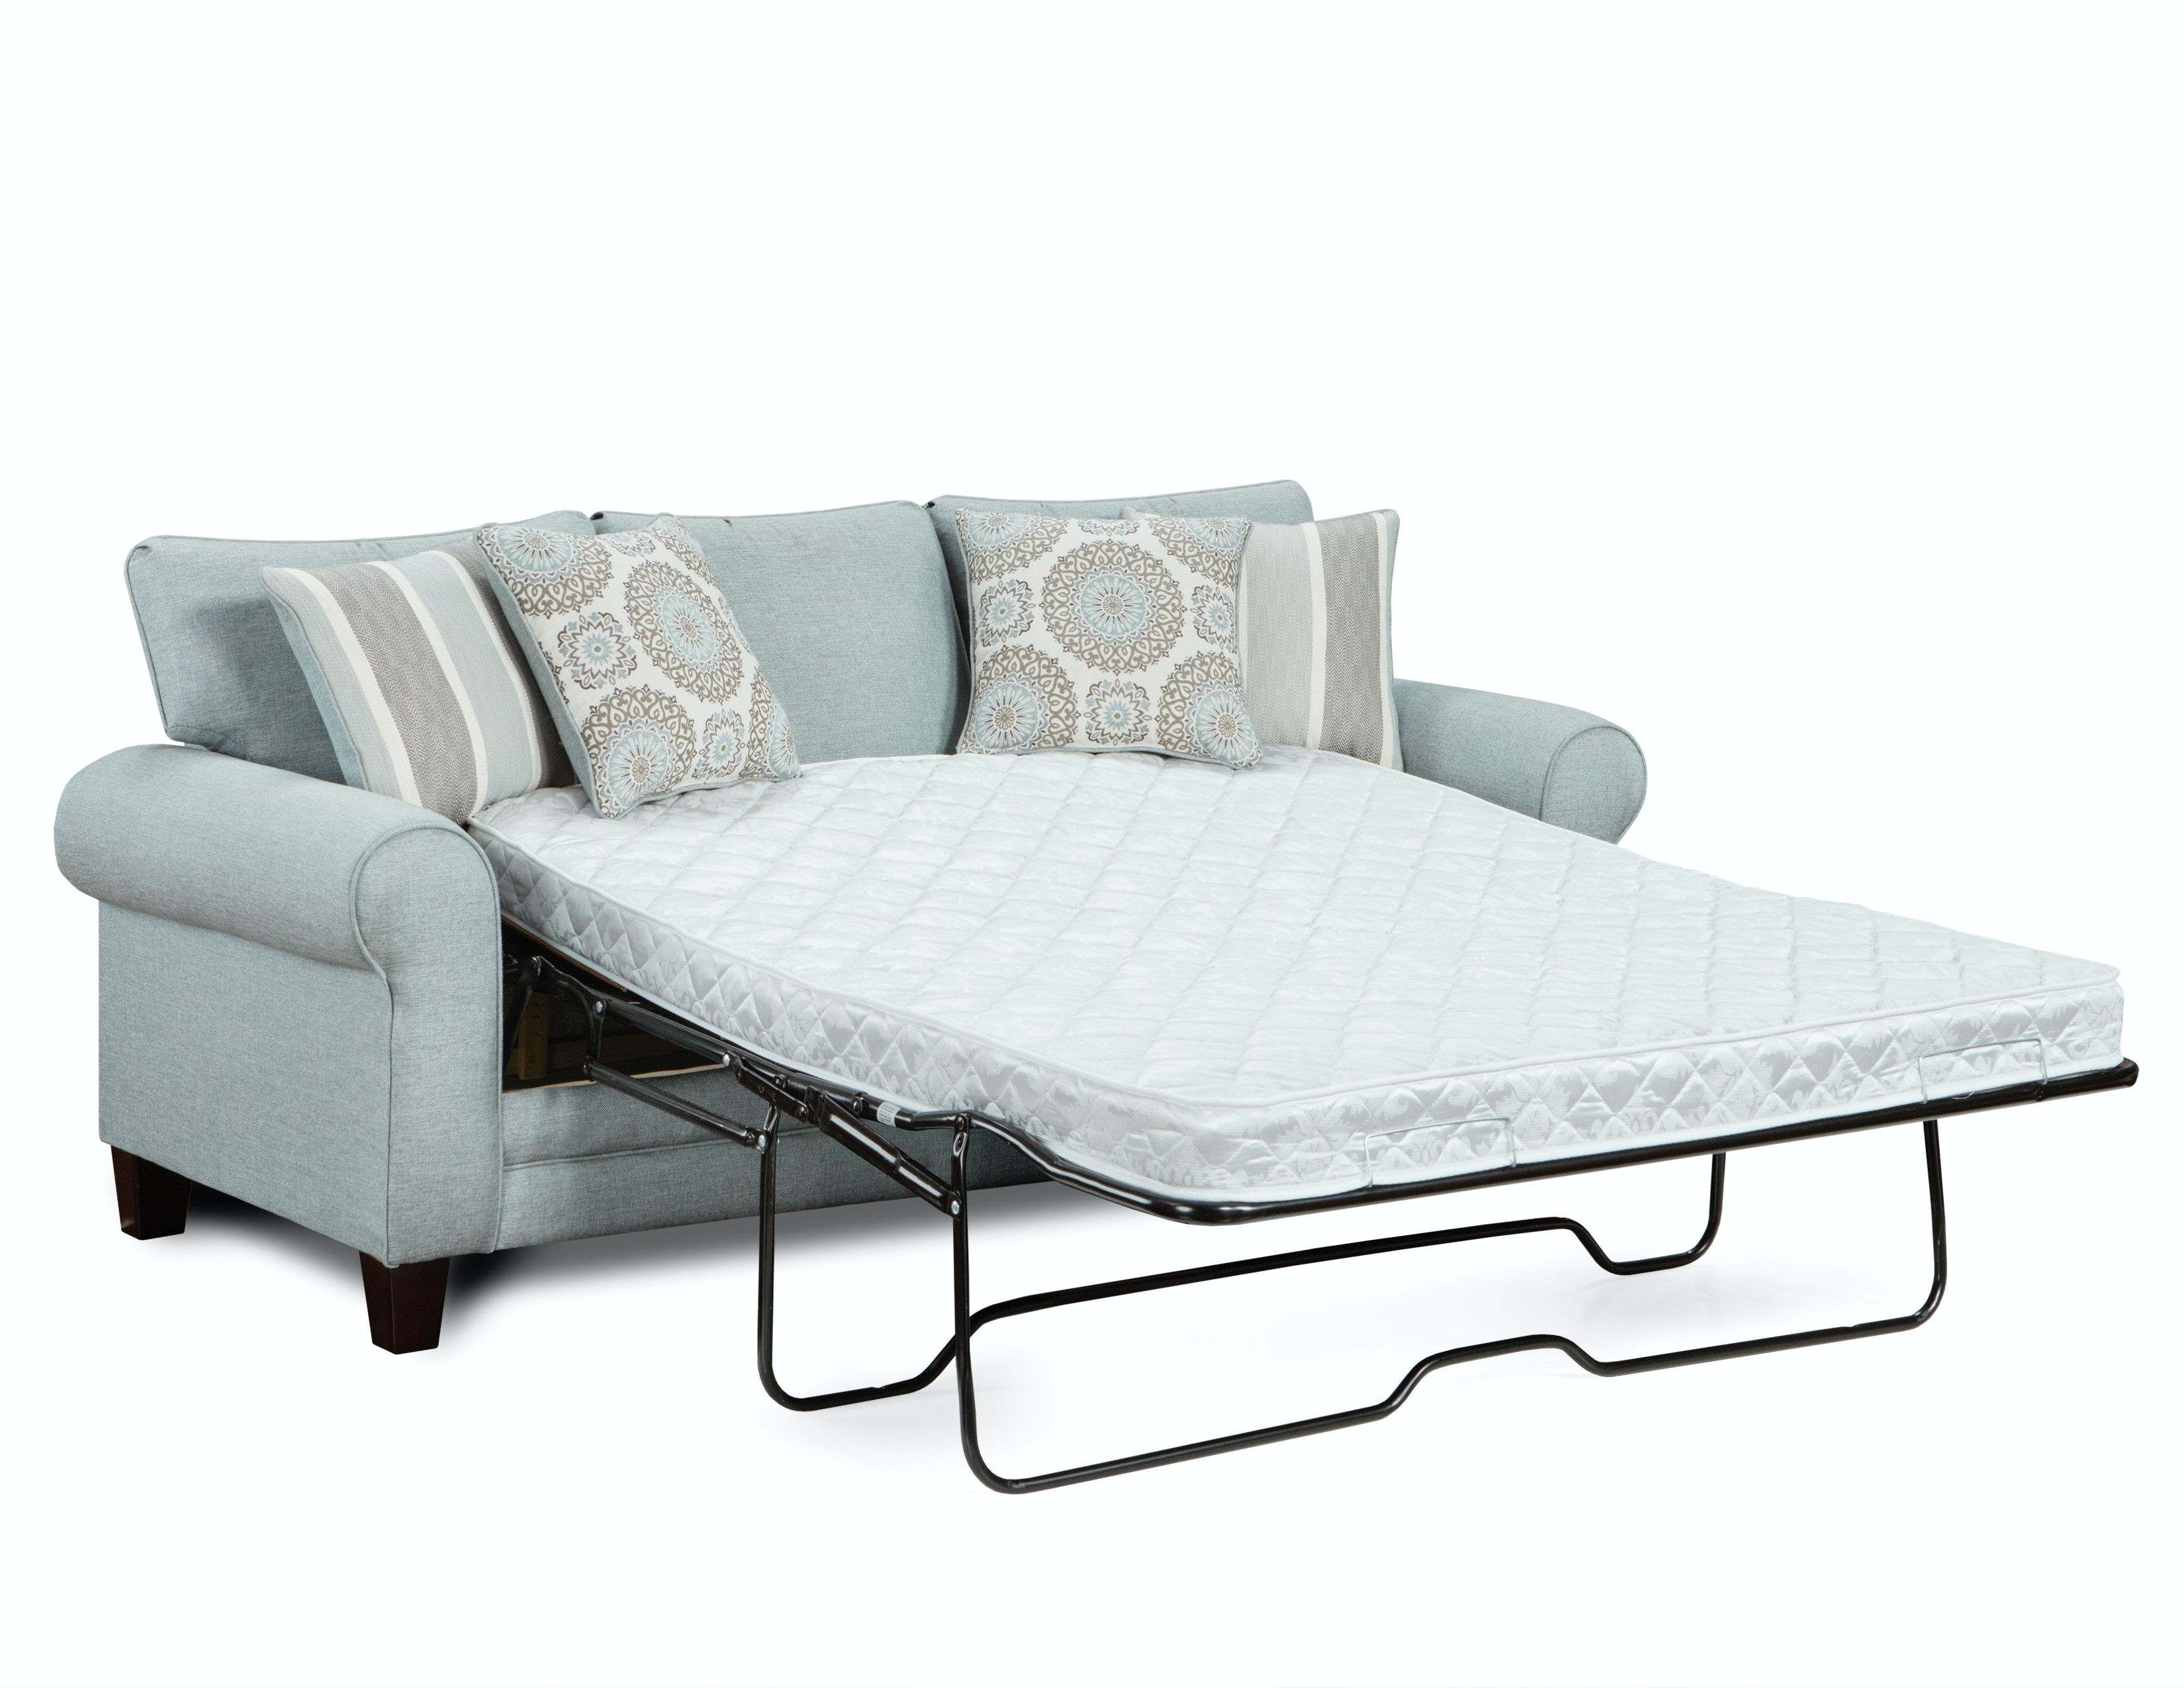 Delicieux Madison Queen Sleeper Sofa ST:500763